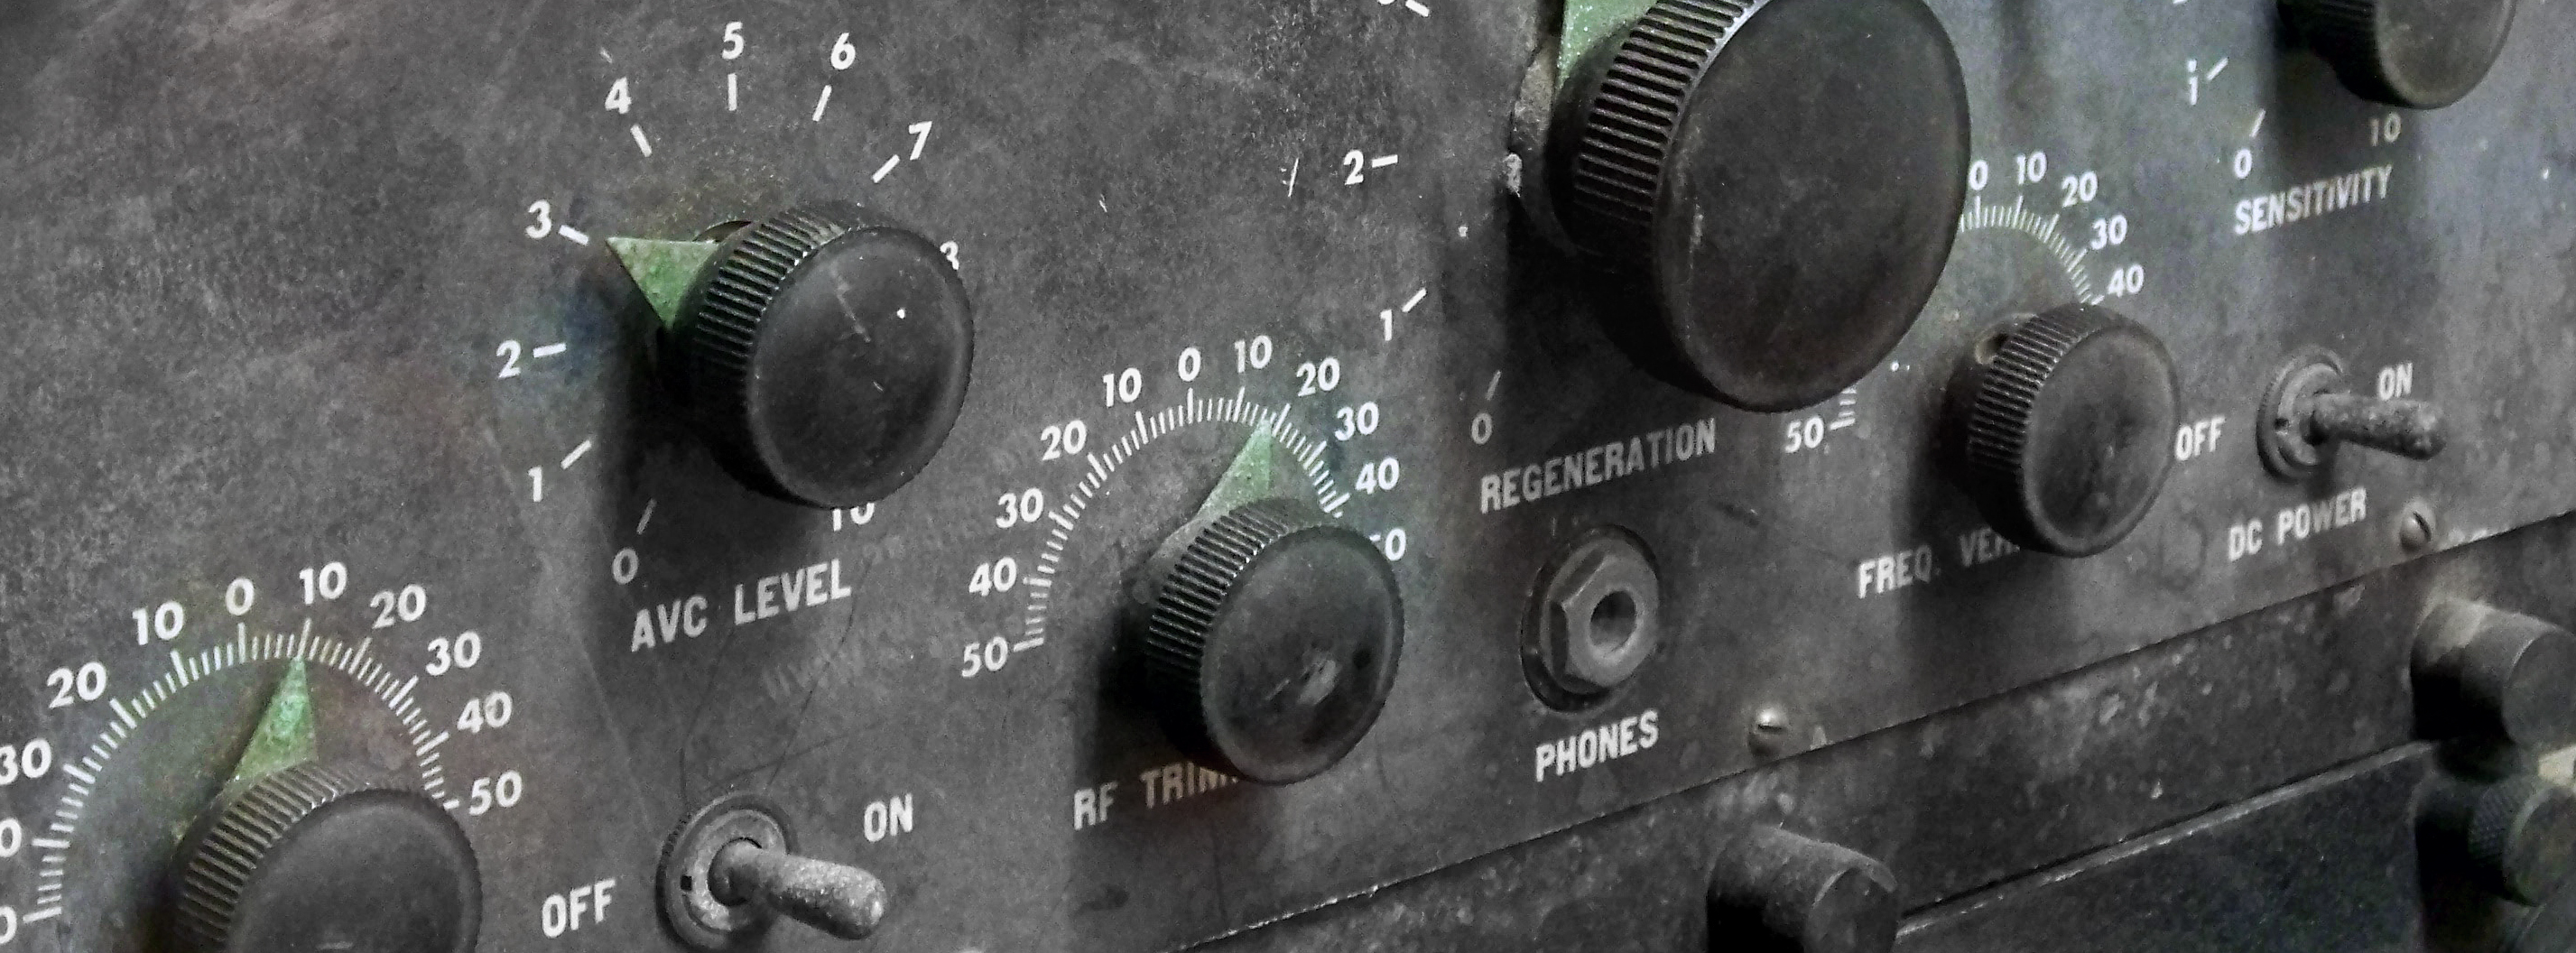 Old control panel with dial indicators.